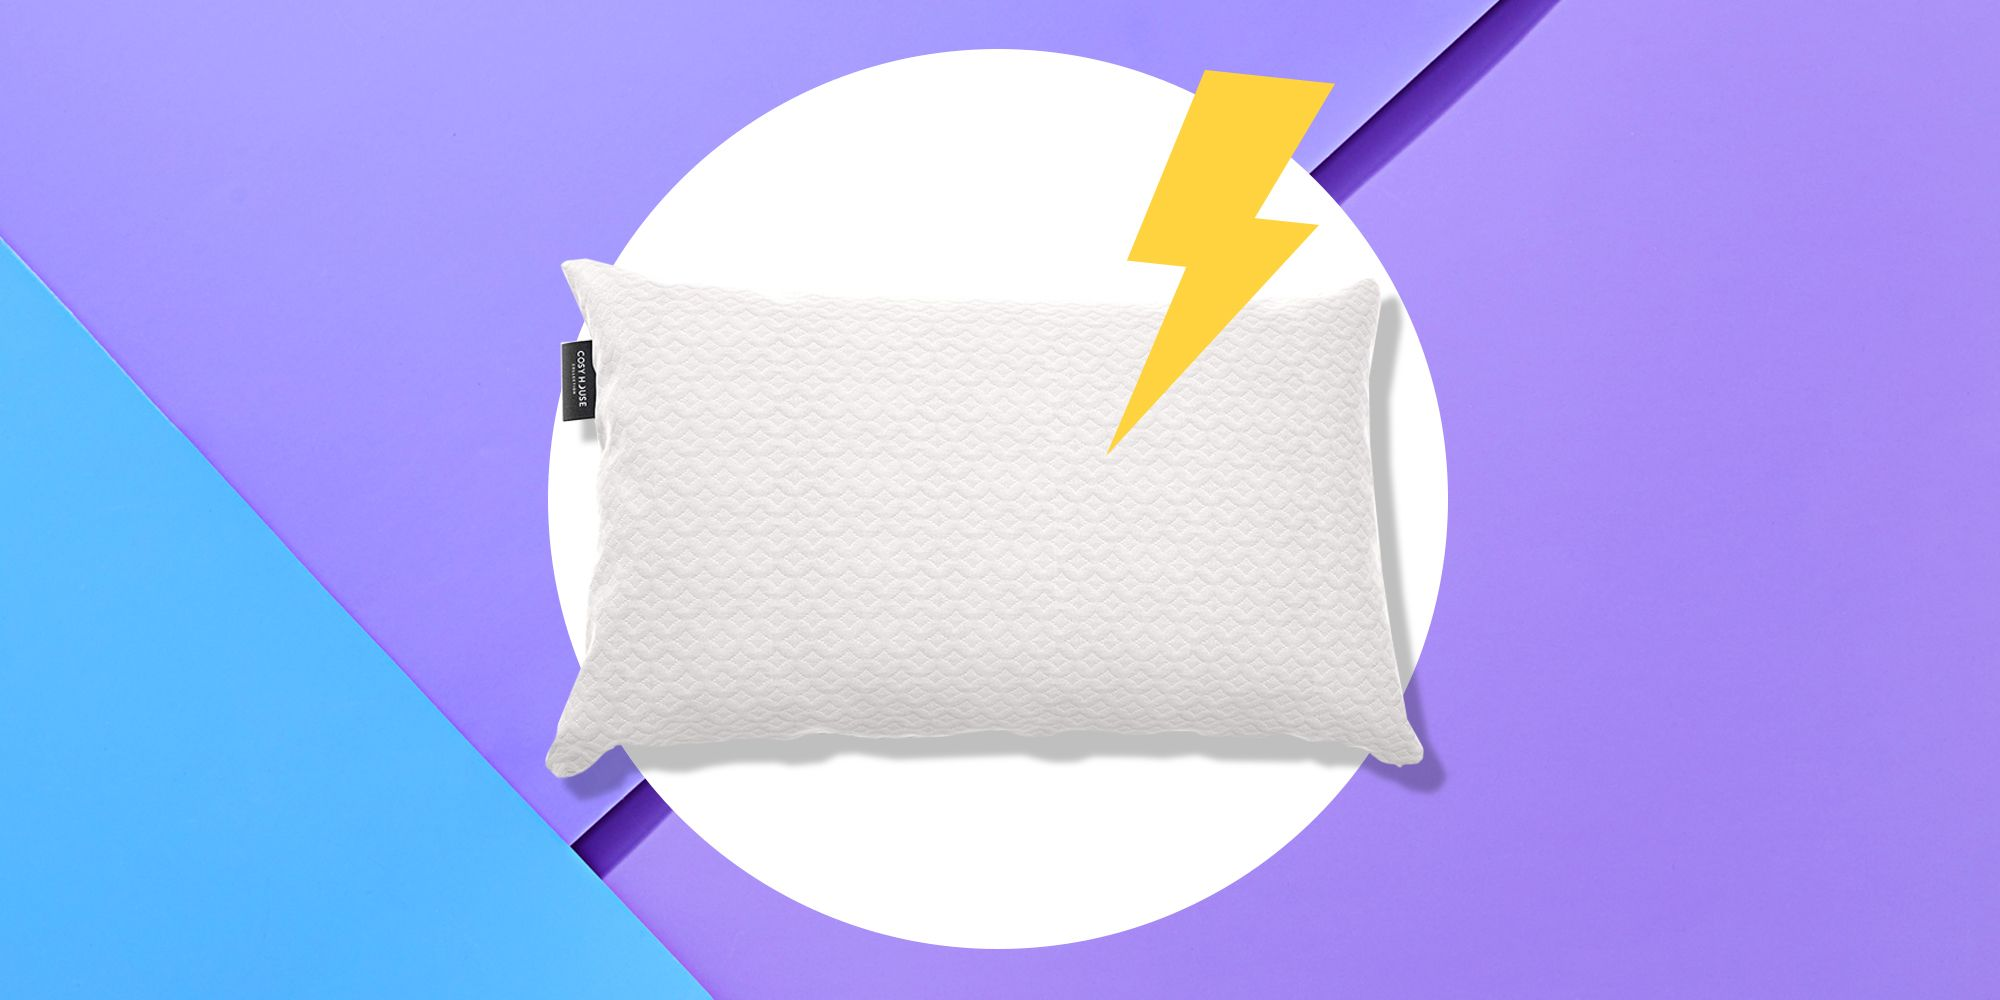 best pillows for back sleepers in 2021